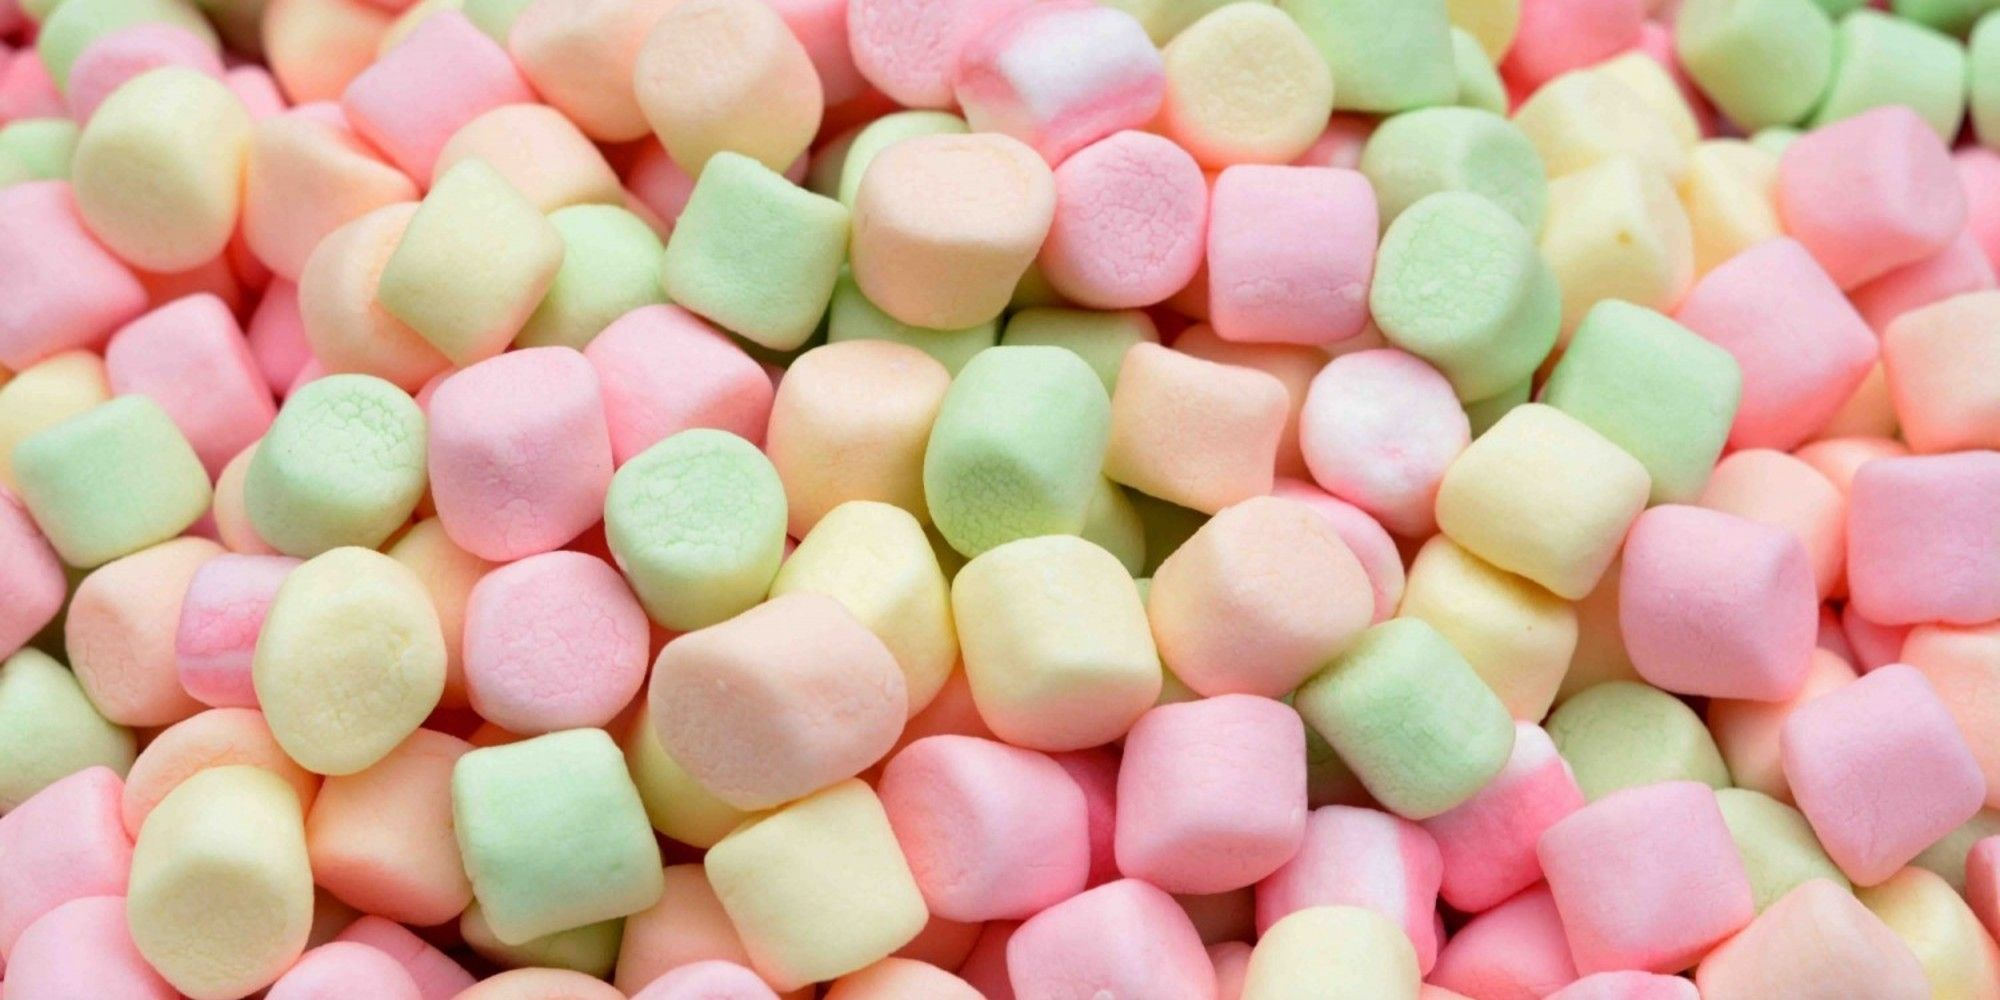 How to Make Healthy Marshmallows and Eat as Many as You Want #healthymarshmallows How to Make Healthy Marshmallows and Eat as Many as You Want | Huffington Post #healthymarshmallows How to Make Healthy Marshmallows and Eat as Many as You Want #healthymarshmallows How to Make Healthy Marshmallows and Eat as Many as You Want | Huffington Post #healthymarshmallows